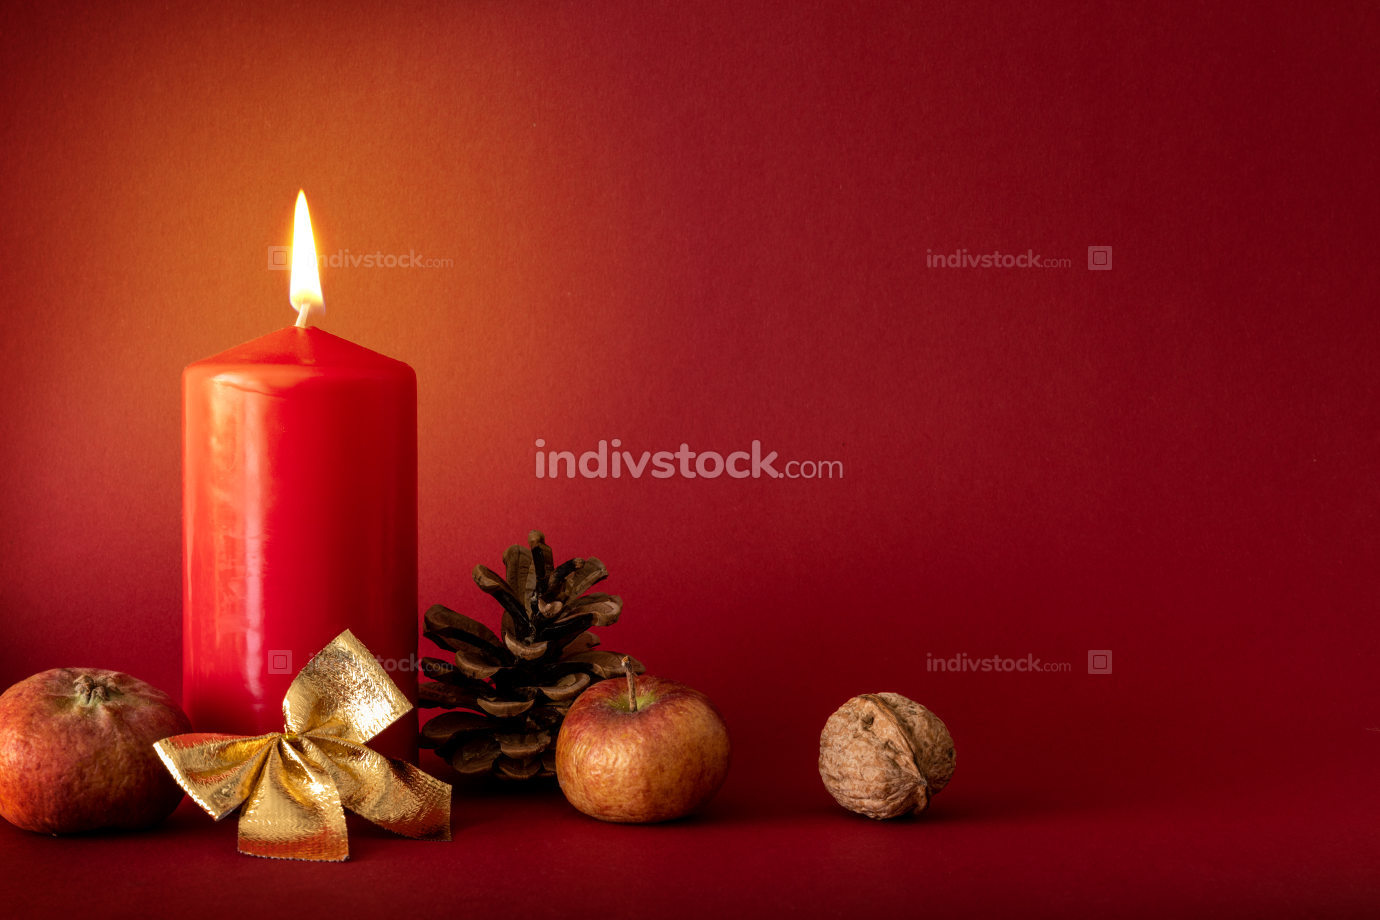 Christmas decoration with a burning candle on red background